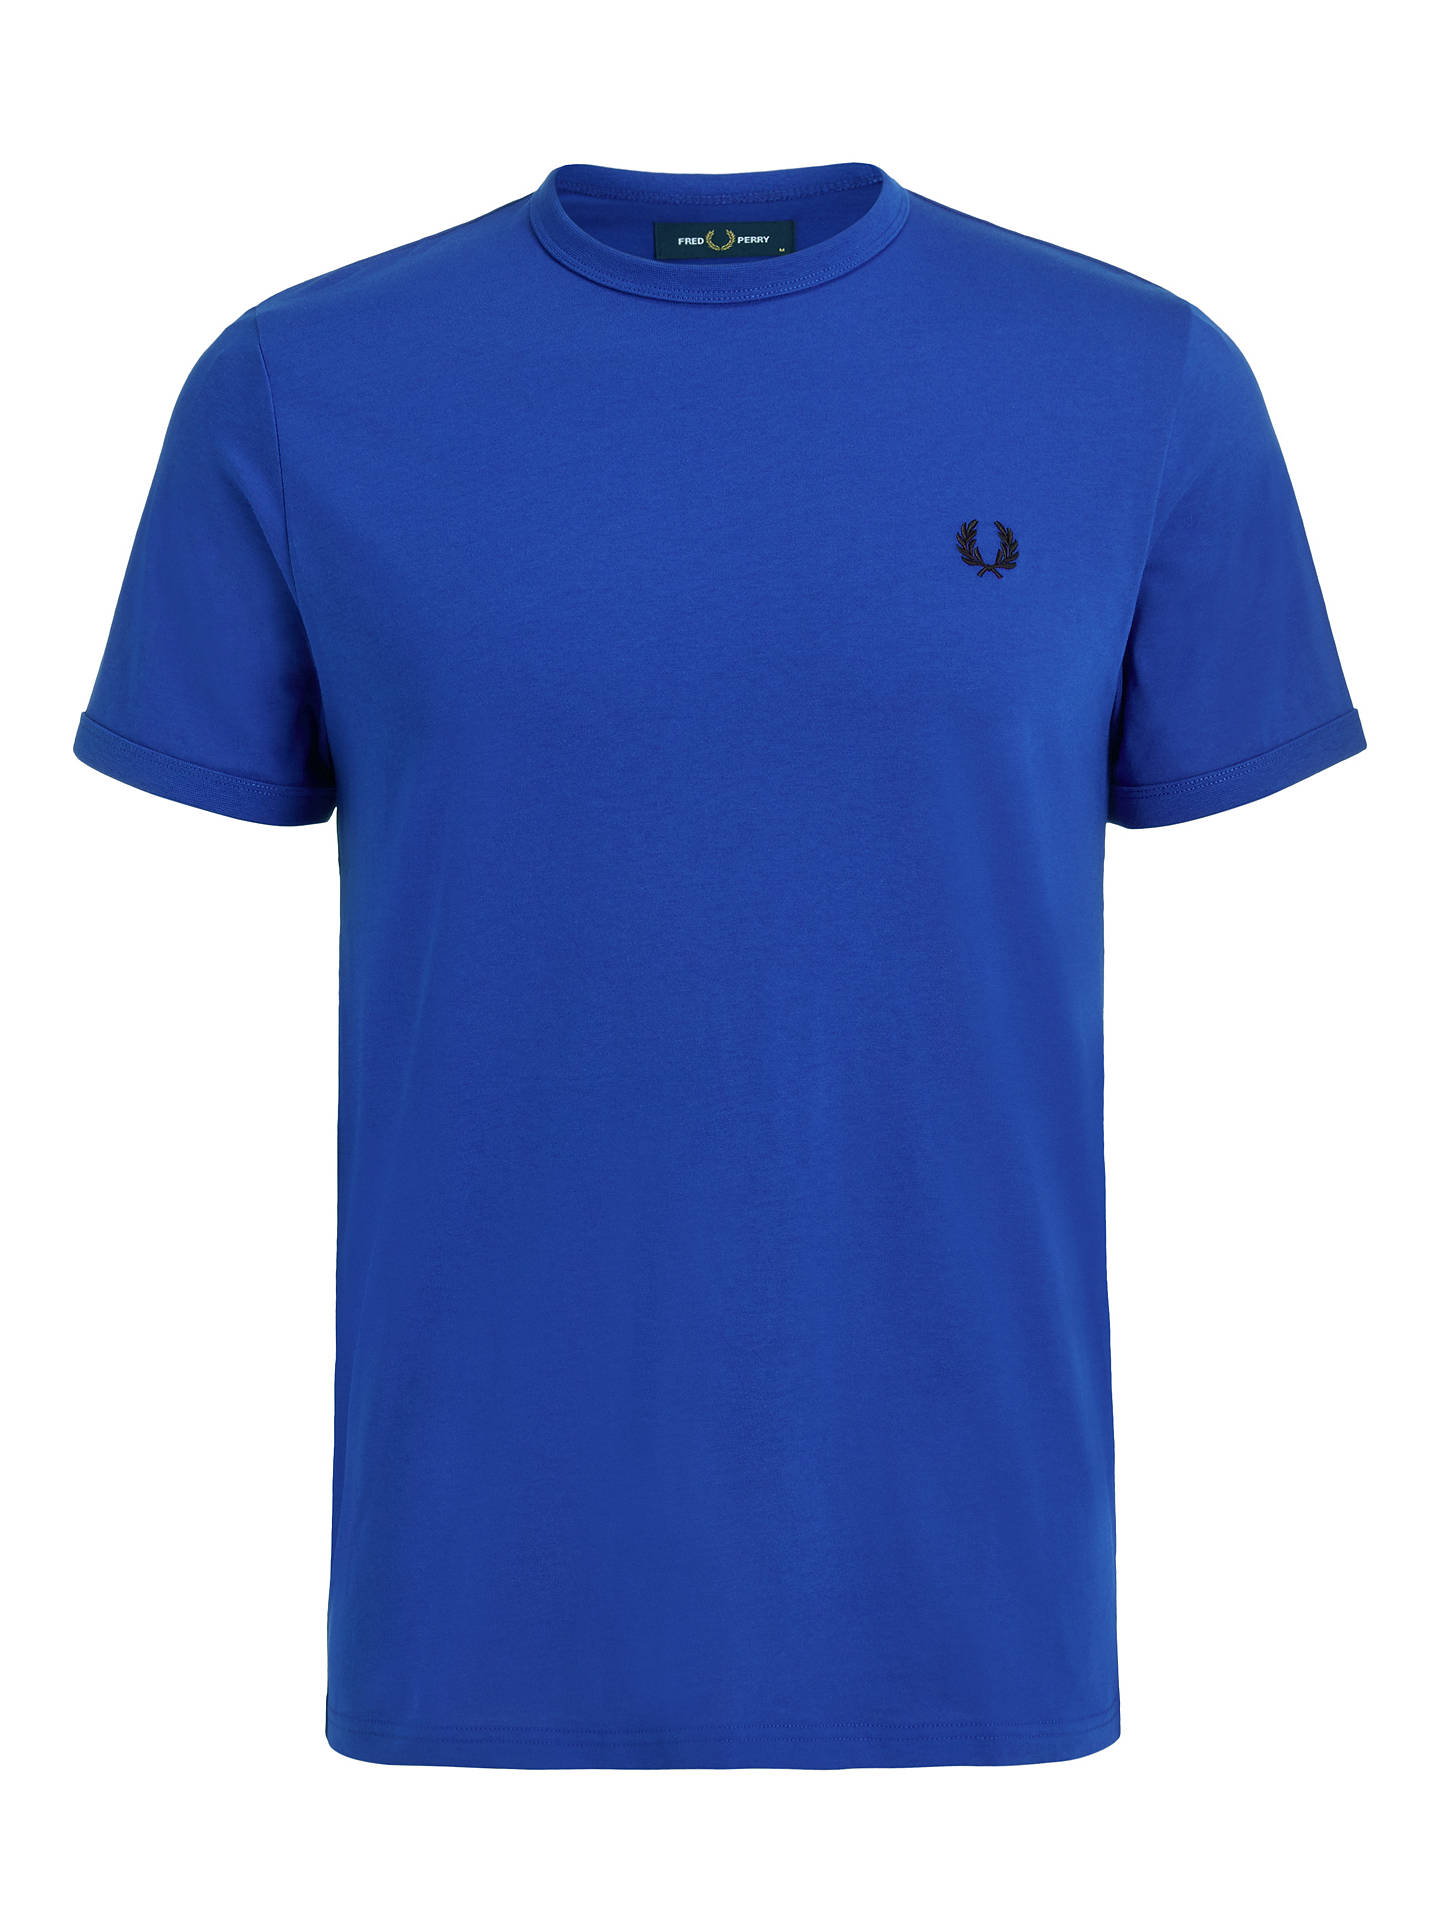 Buy Fred Perry Ringer Crew Neck T-Shirt, Bright Regal, S Online at johnlewis.com